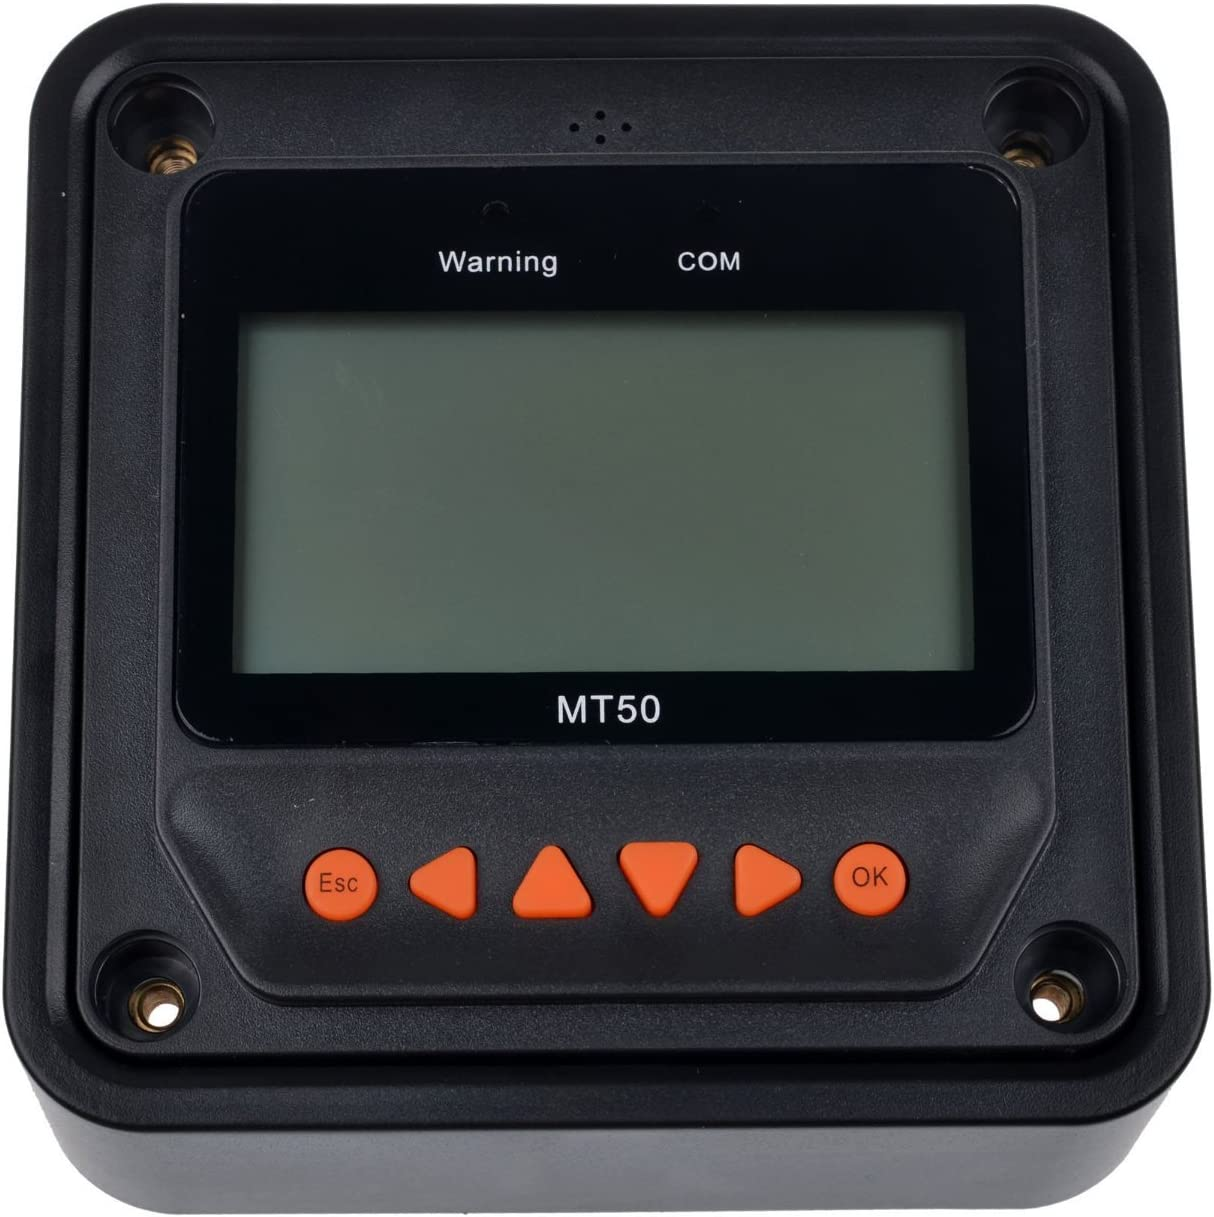 BAYM MT 50 MT-50 Remote Meter Tracer LCD Display for 1215BN 2215BN 3215BN 4215BN MPPT Charge Controller